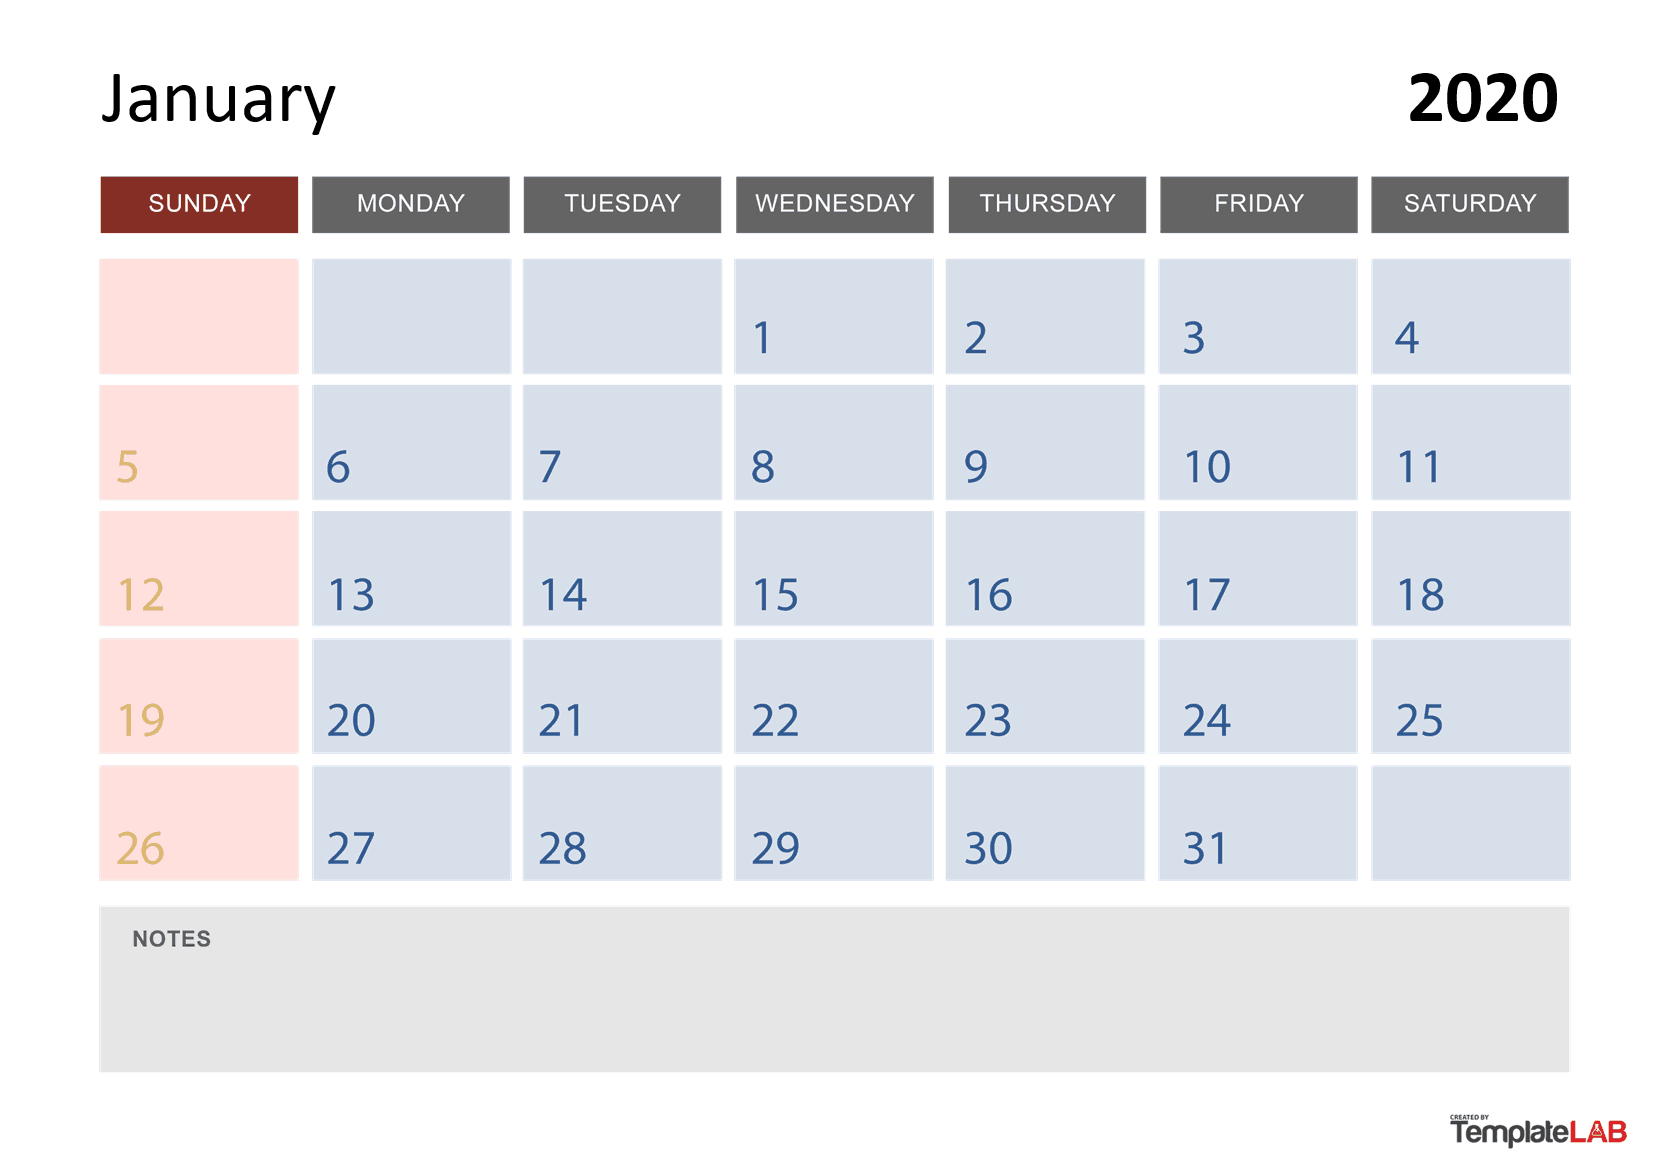 2020 Printable Calendars [Monthly, With Holidays, Yearly] ᐅ inside 3 Month Printable Calendar 2020